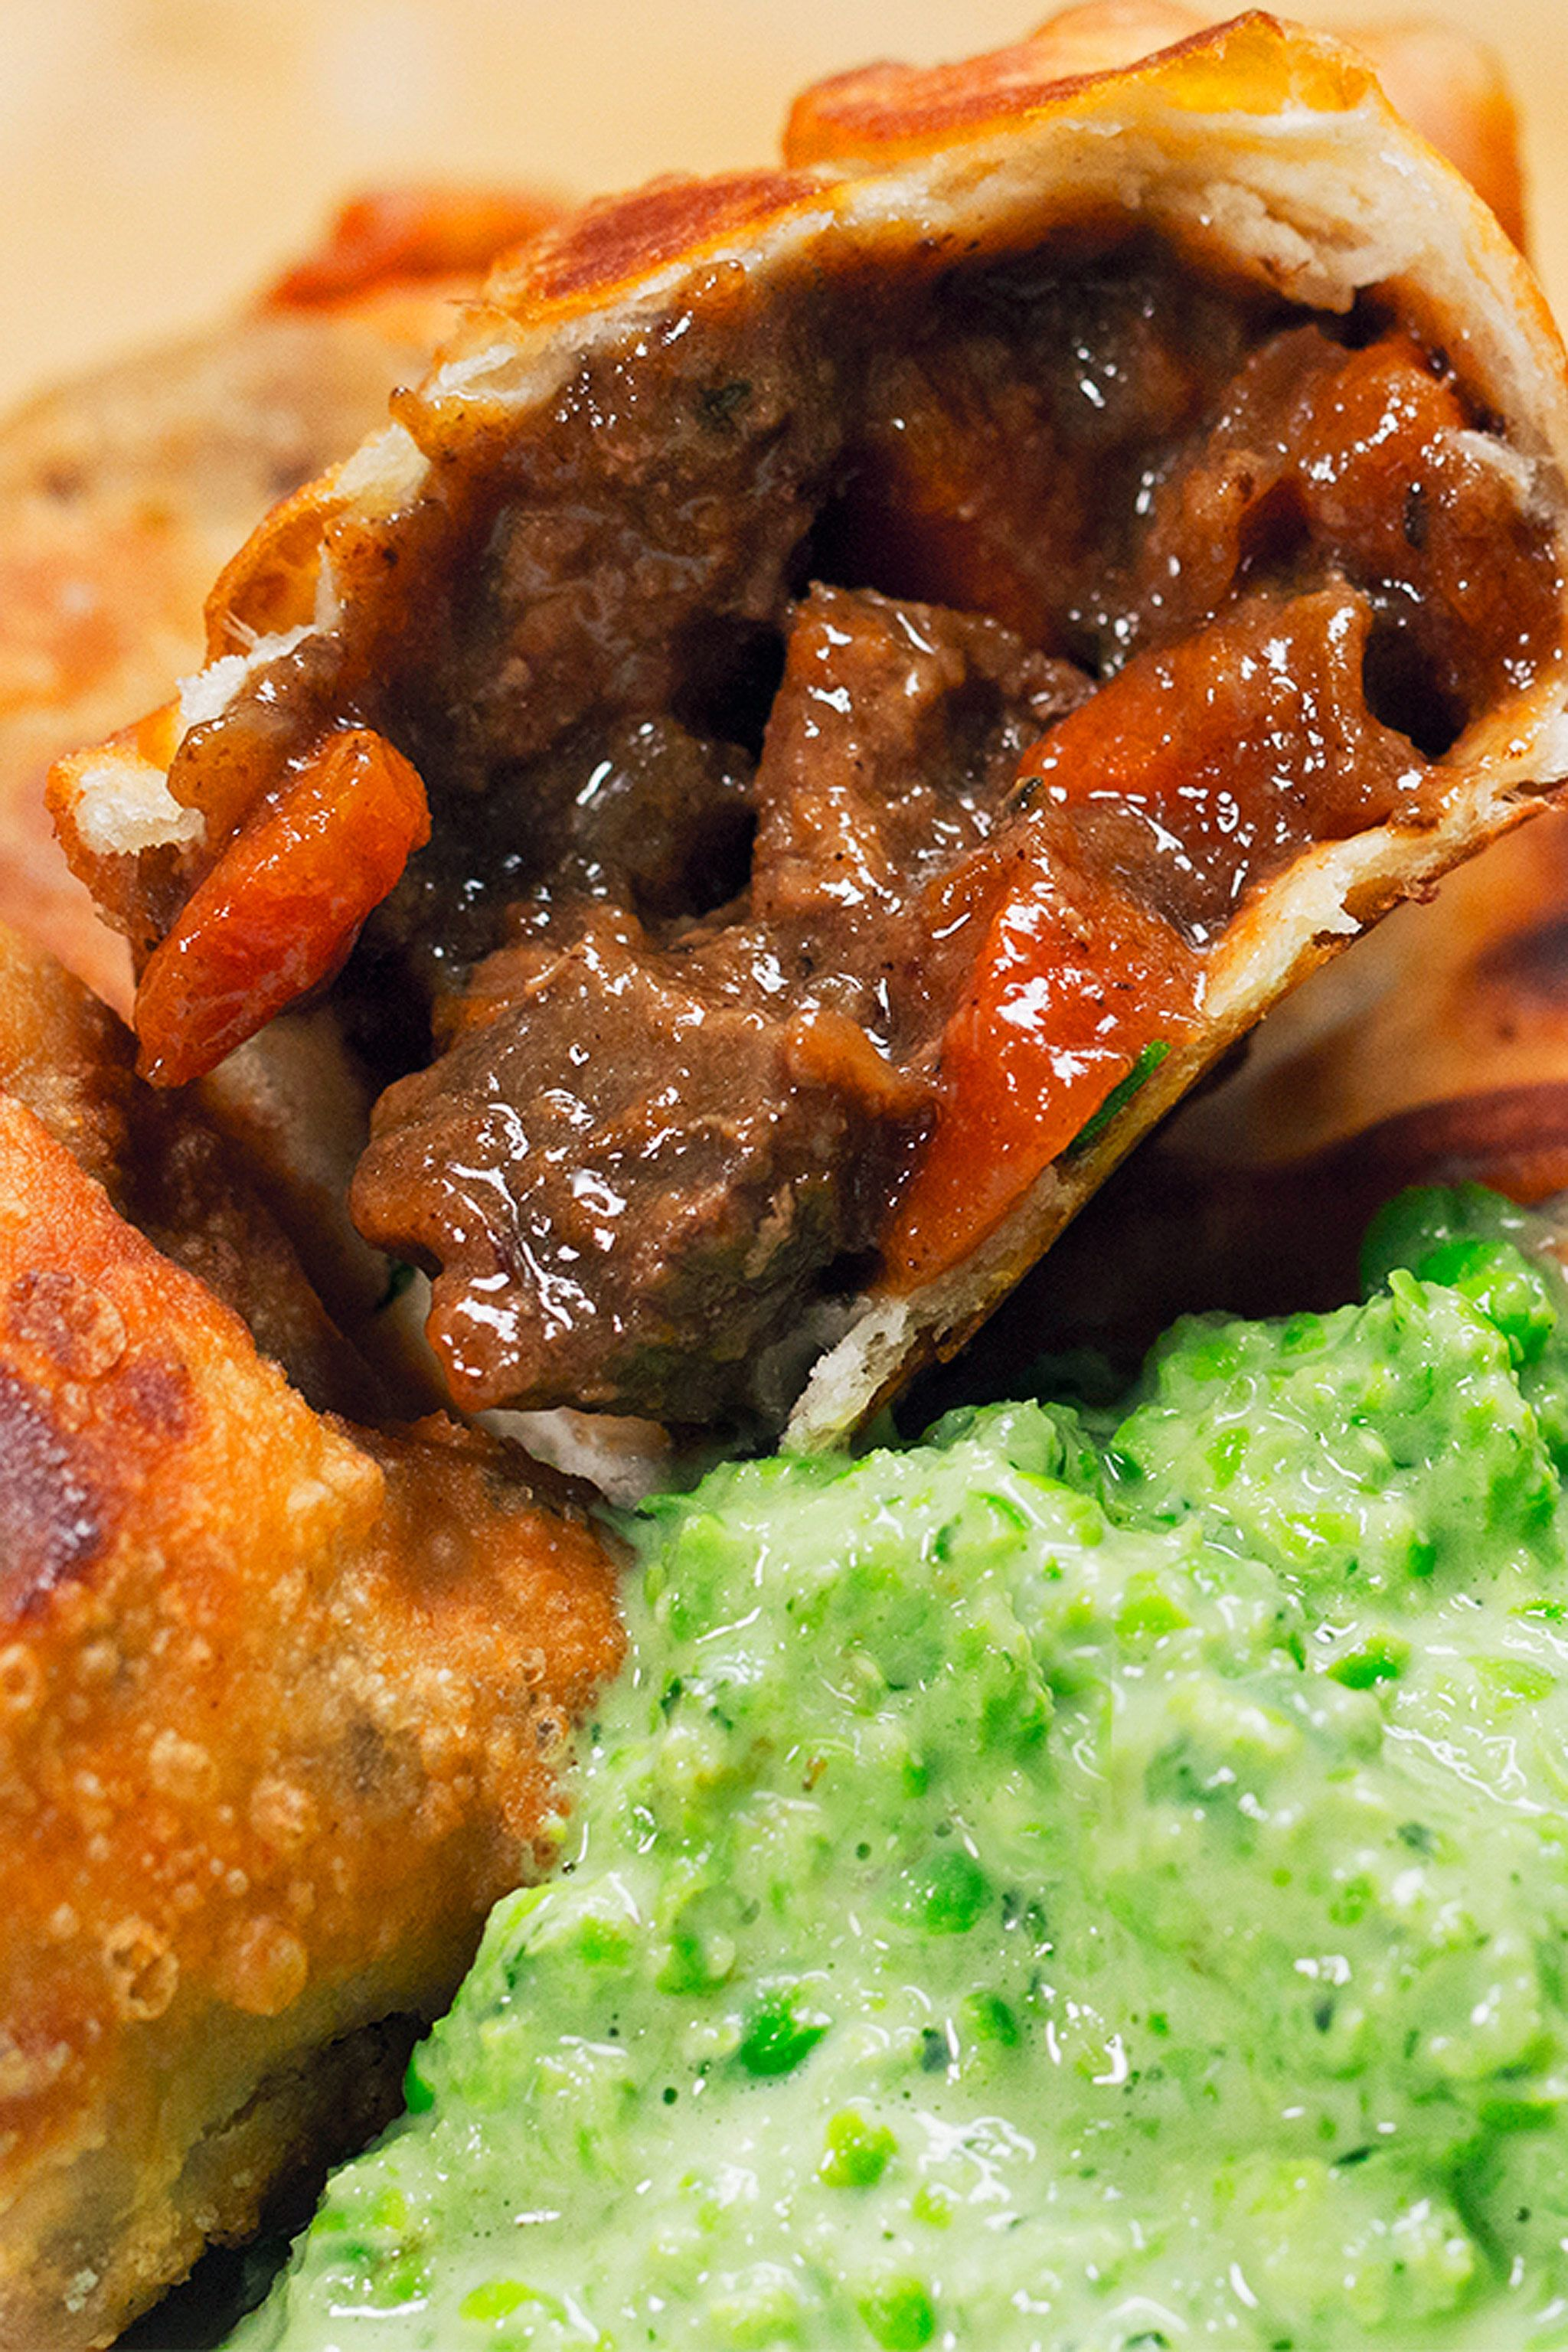 ... ideas about Steak And Ale on Pinterest | Ales, Steak Recipes and Pie